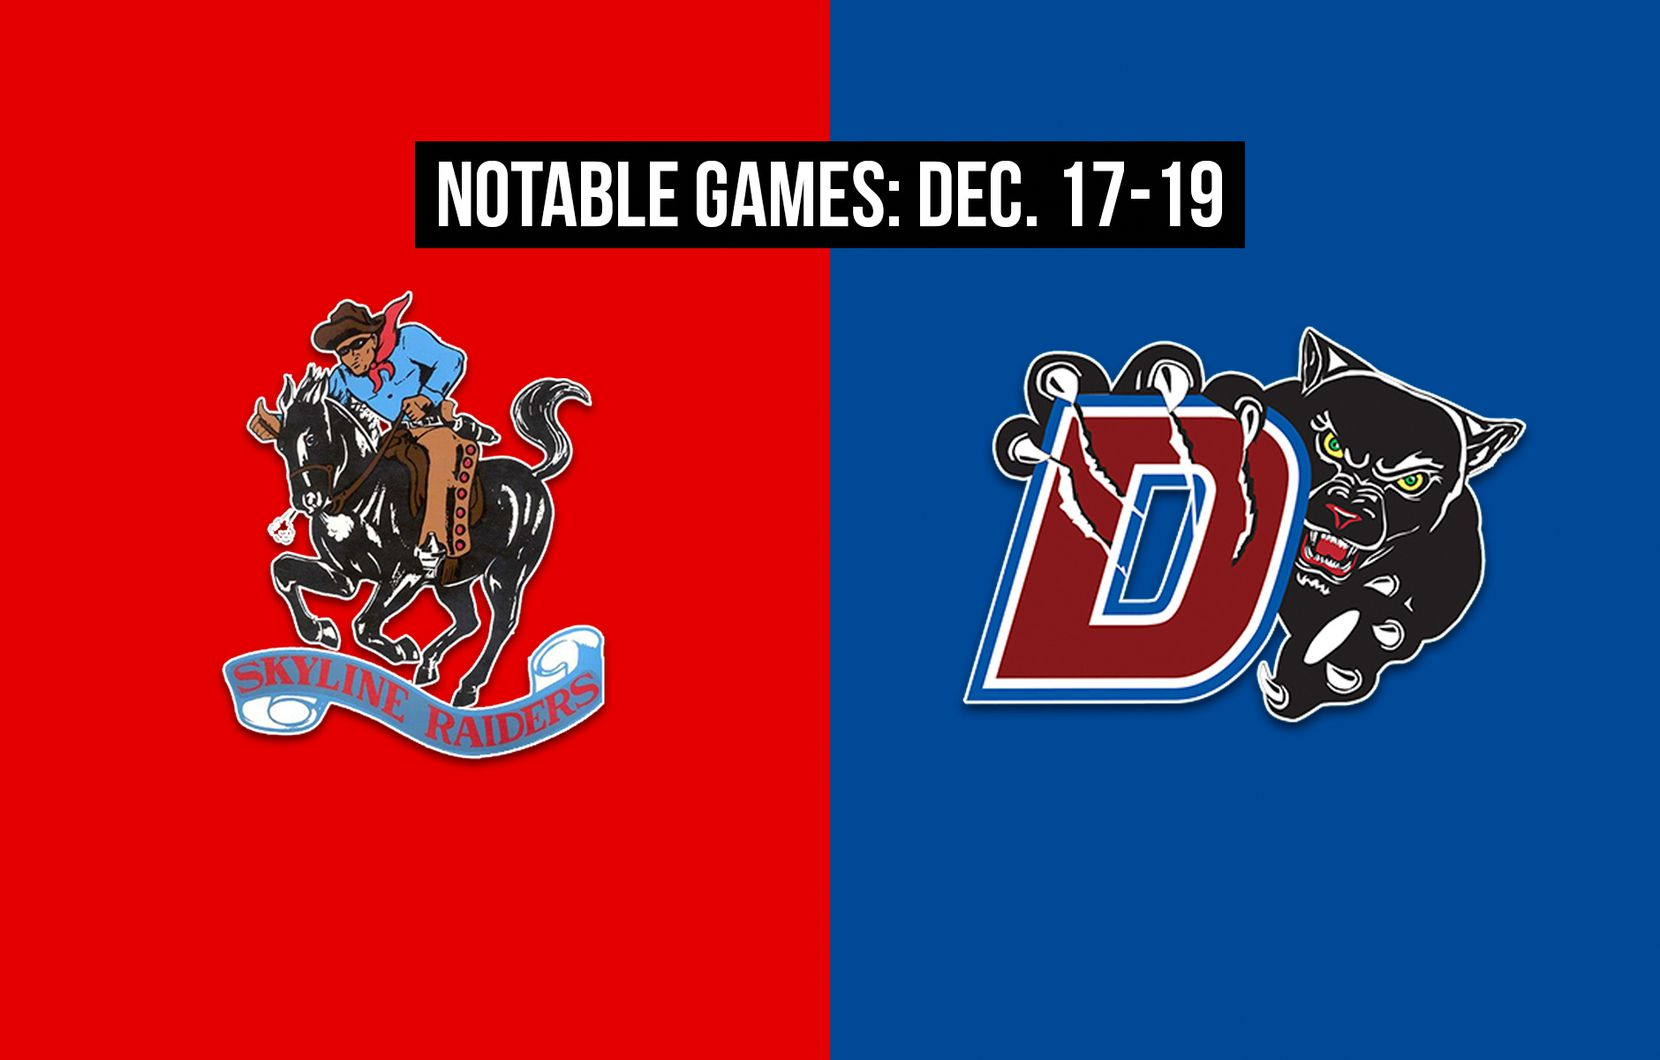 Notable games for the week of Dec. 17-19 of the 2020 season: Skyline vs. Duncanville.